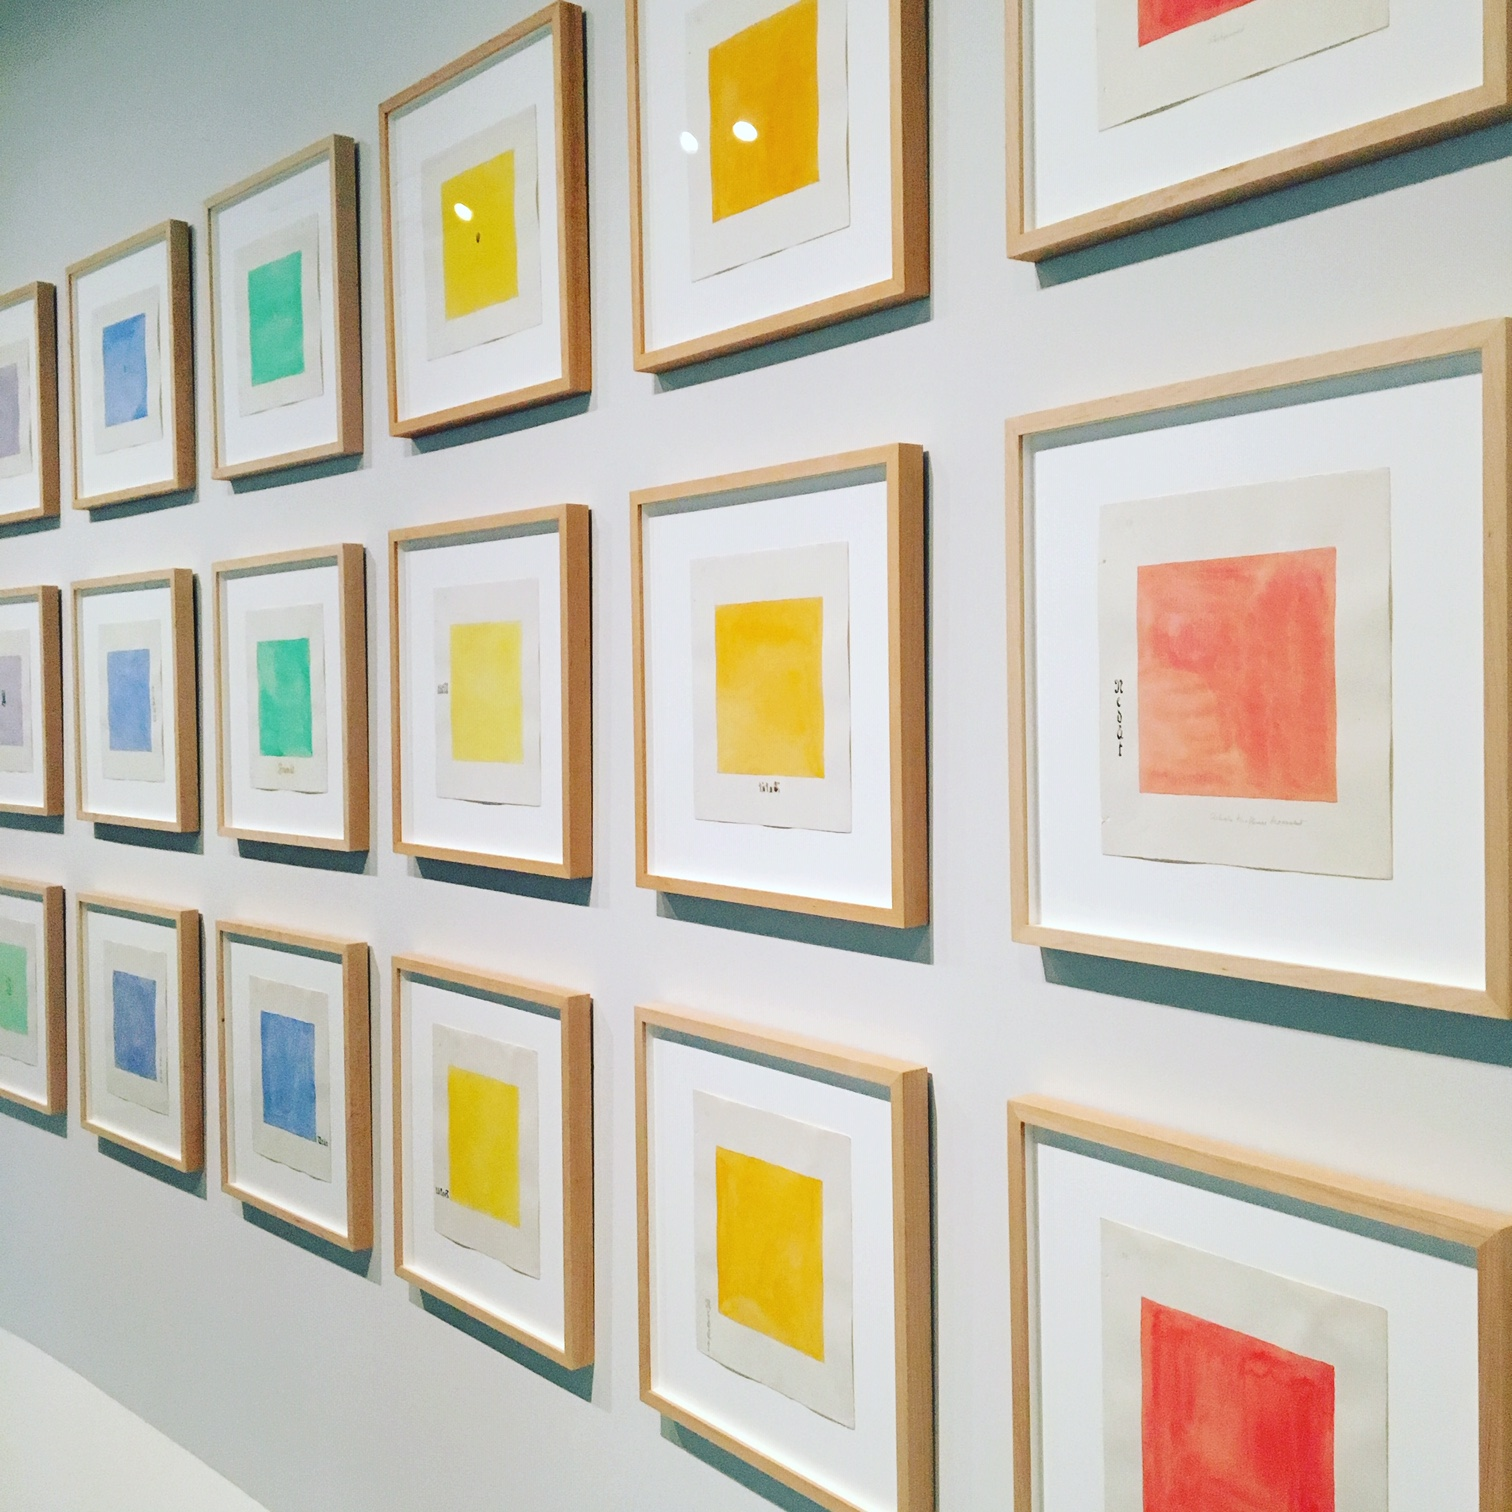 Hilma af Klint: Paintings for the Future at the Guggenheim Museum, on view through April 23; Photo cred: Mara Vlatkovic